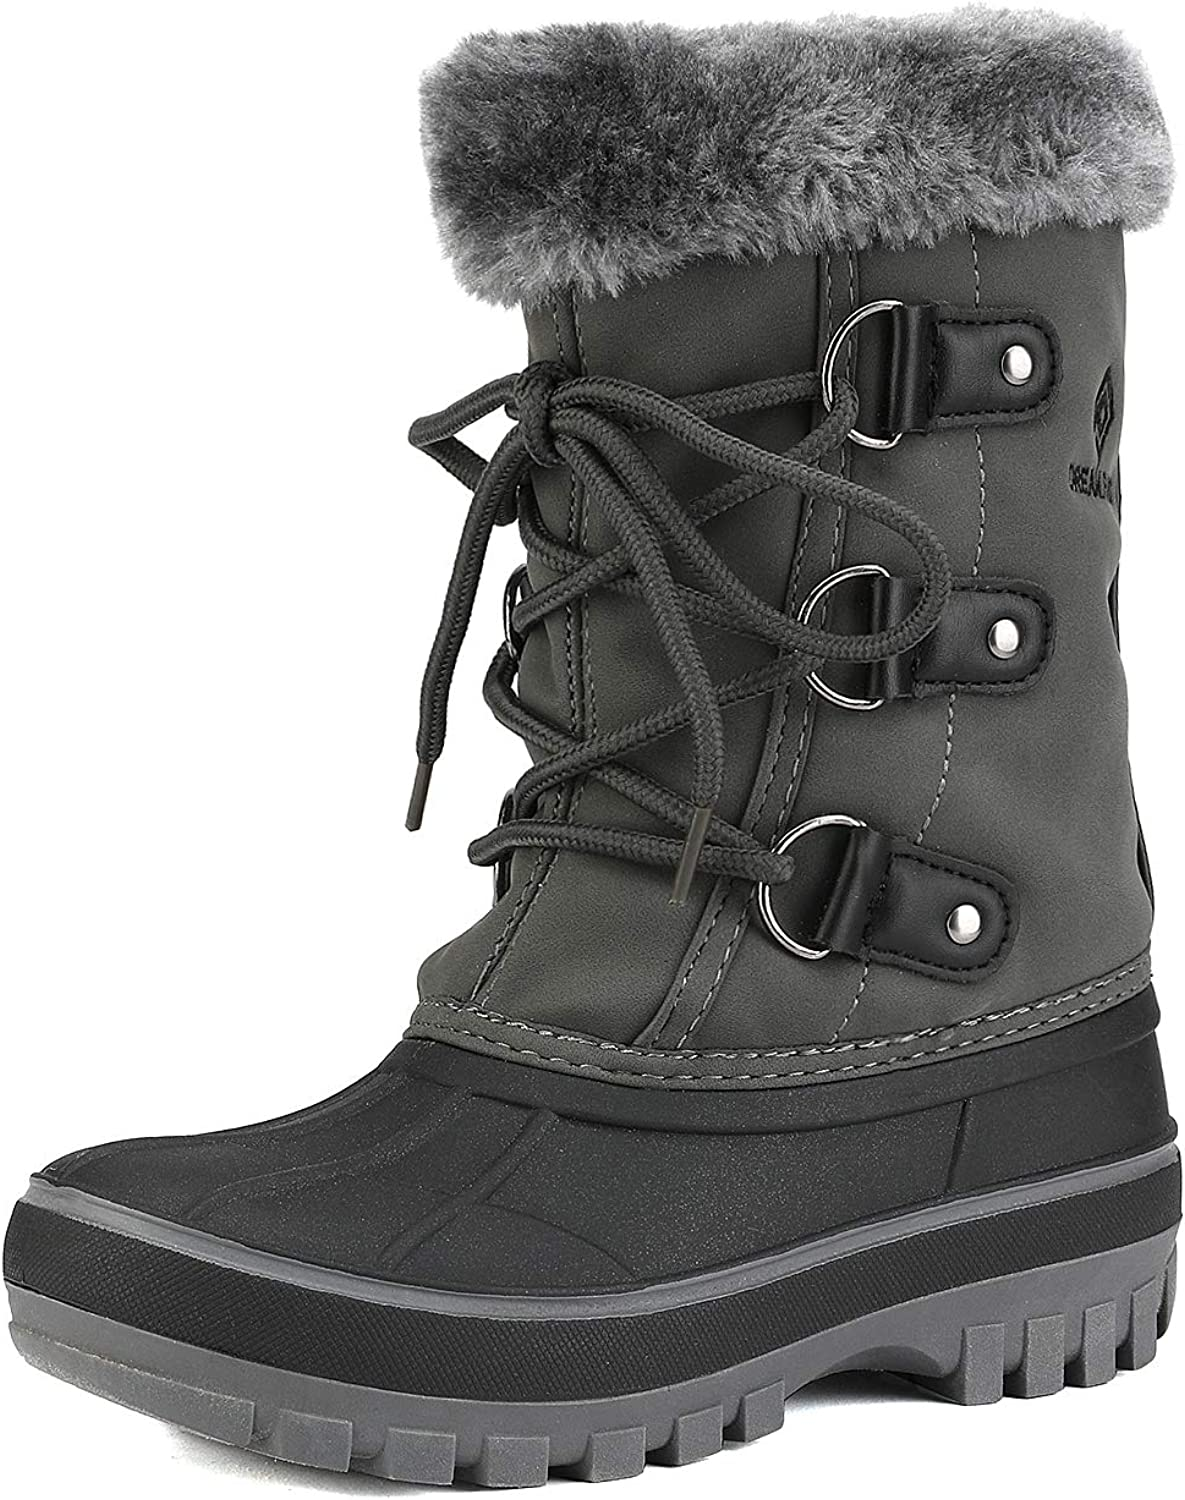 DREAM PAIRS Boys /& Girls Toddler// Kids Faux Fur-Lined Ankle Winter Snow Boots